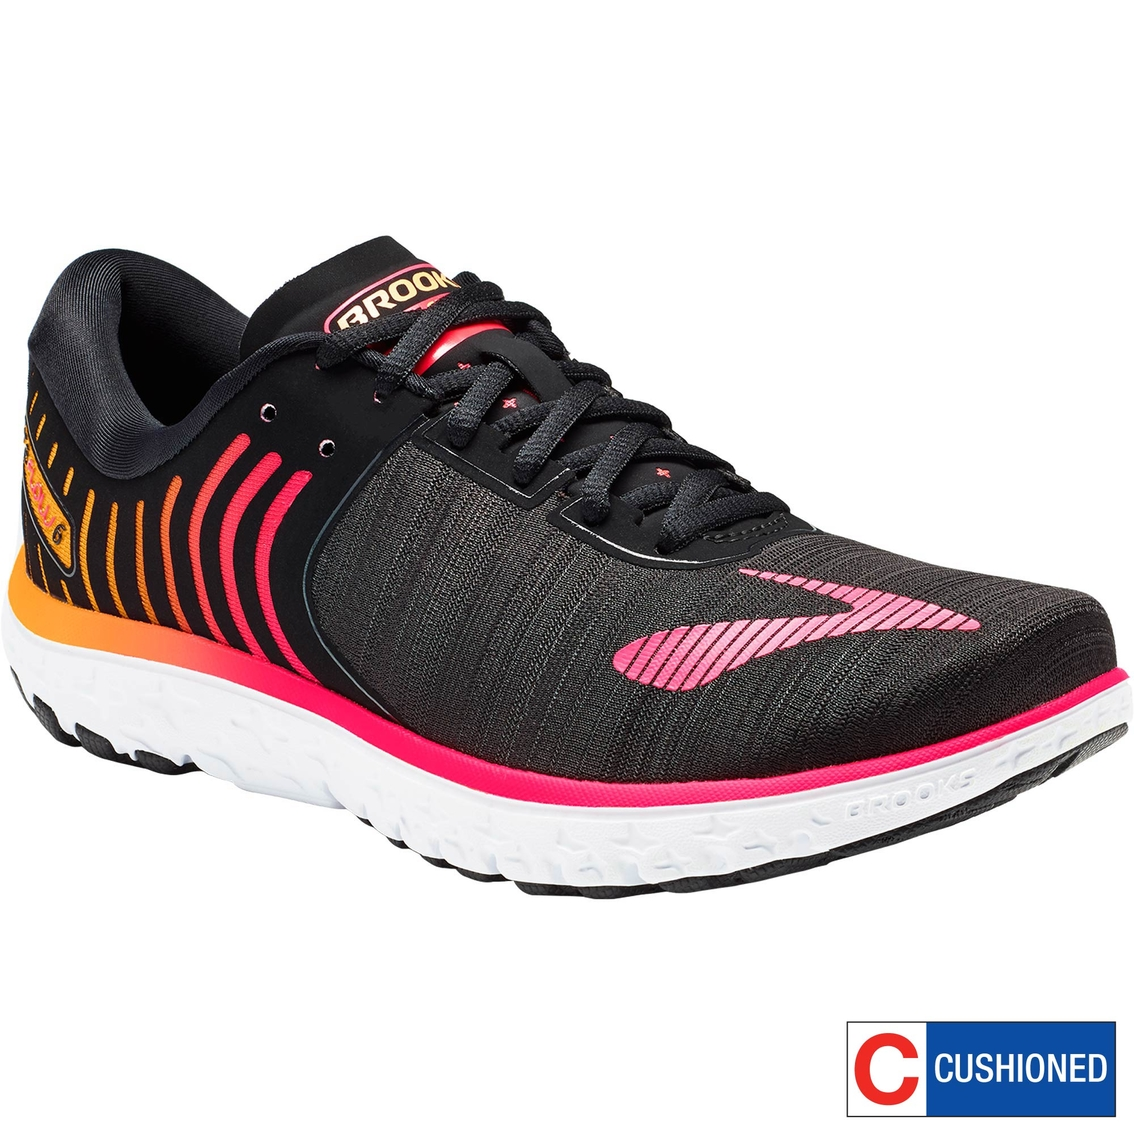 77cb7a629d8 Brooks Women s Pureflow 6 Running Shoes